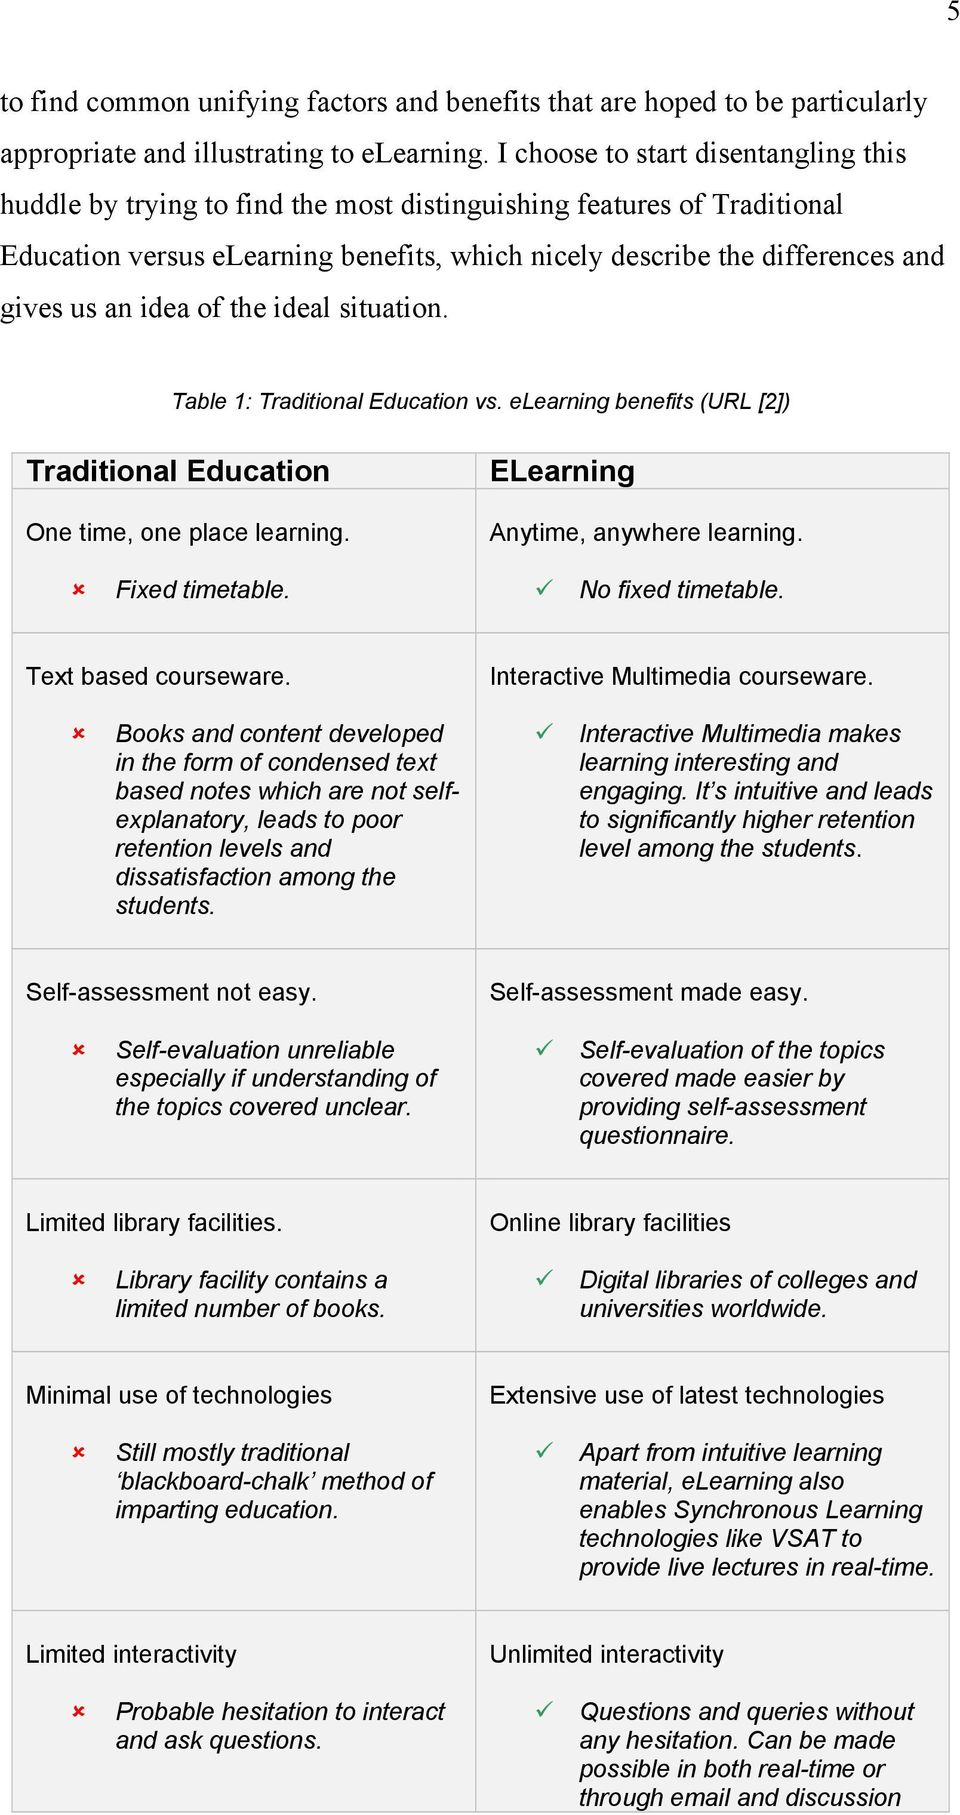 an idea of the ideal situation. Table 1: Traditional Education vs. elearning benefits (URL [2]) Traditional Education One time, one place learning. ELearning Anytime, anywhere learning.